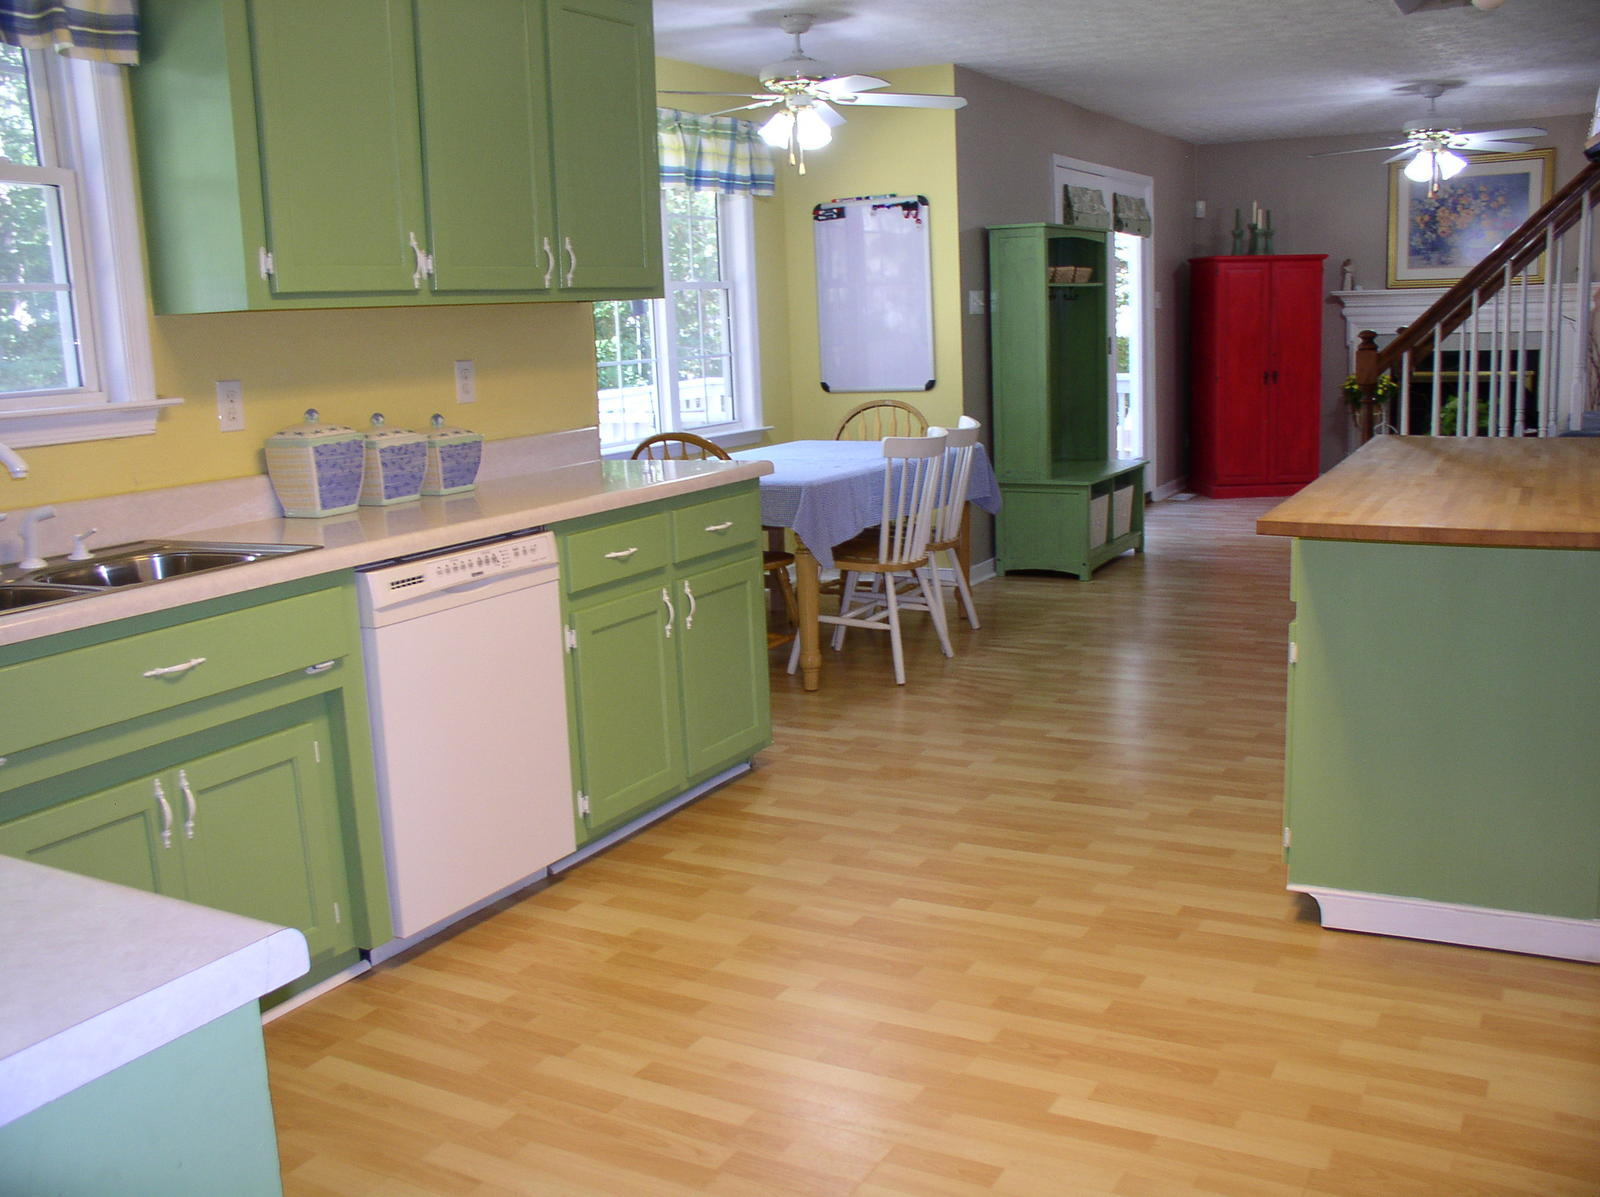 How To Repaint Kitchen Cabinets Painting Your Kitchen Cabinets | Painting Tips From The Pros